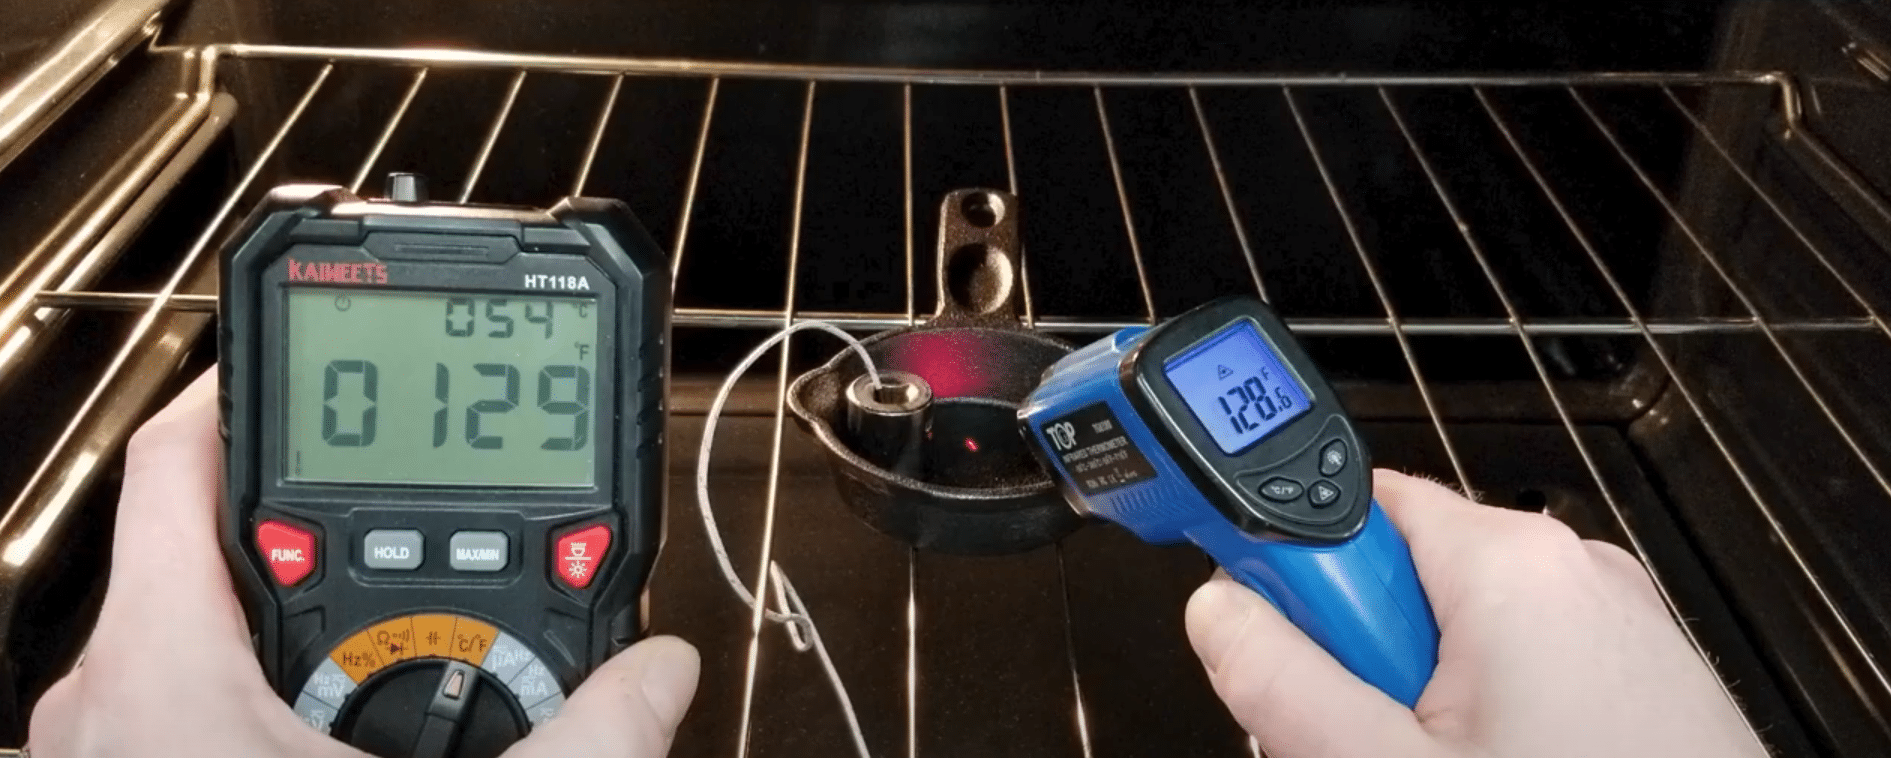 """Featured image for """"How to properly test your range or oven temperature"""""""